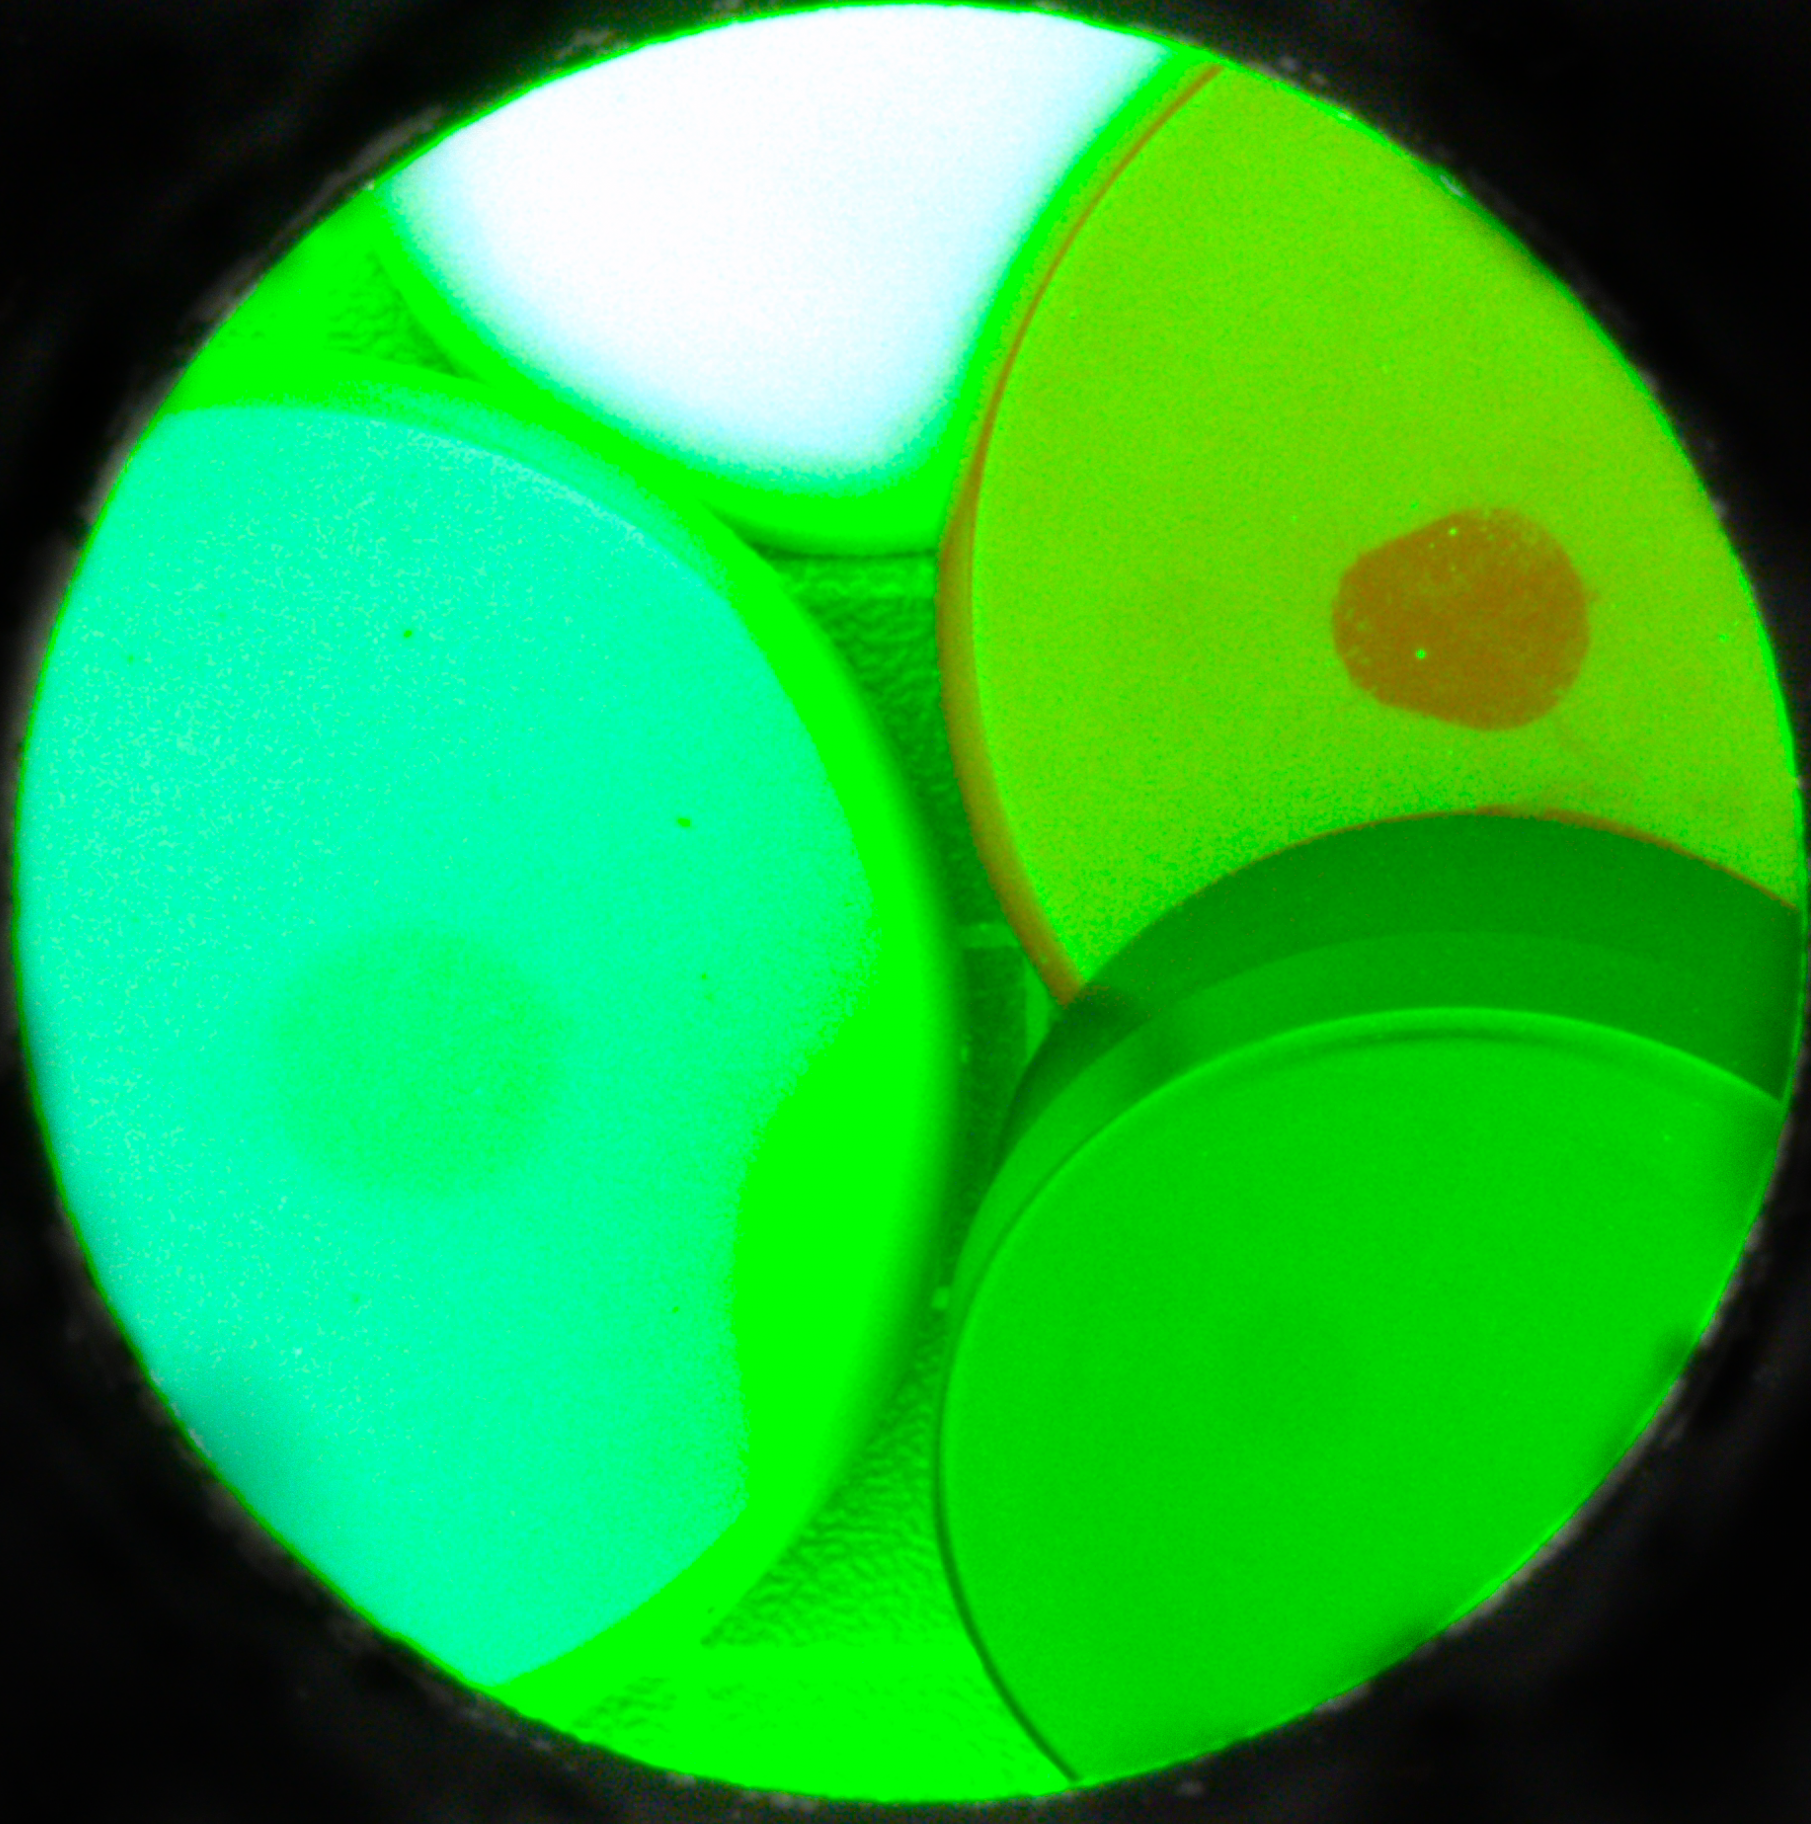 coloured-with-green-light